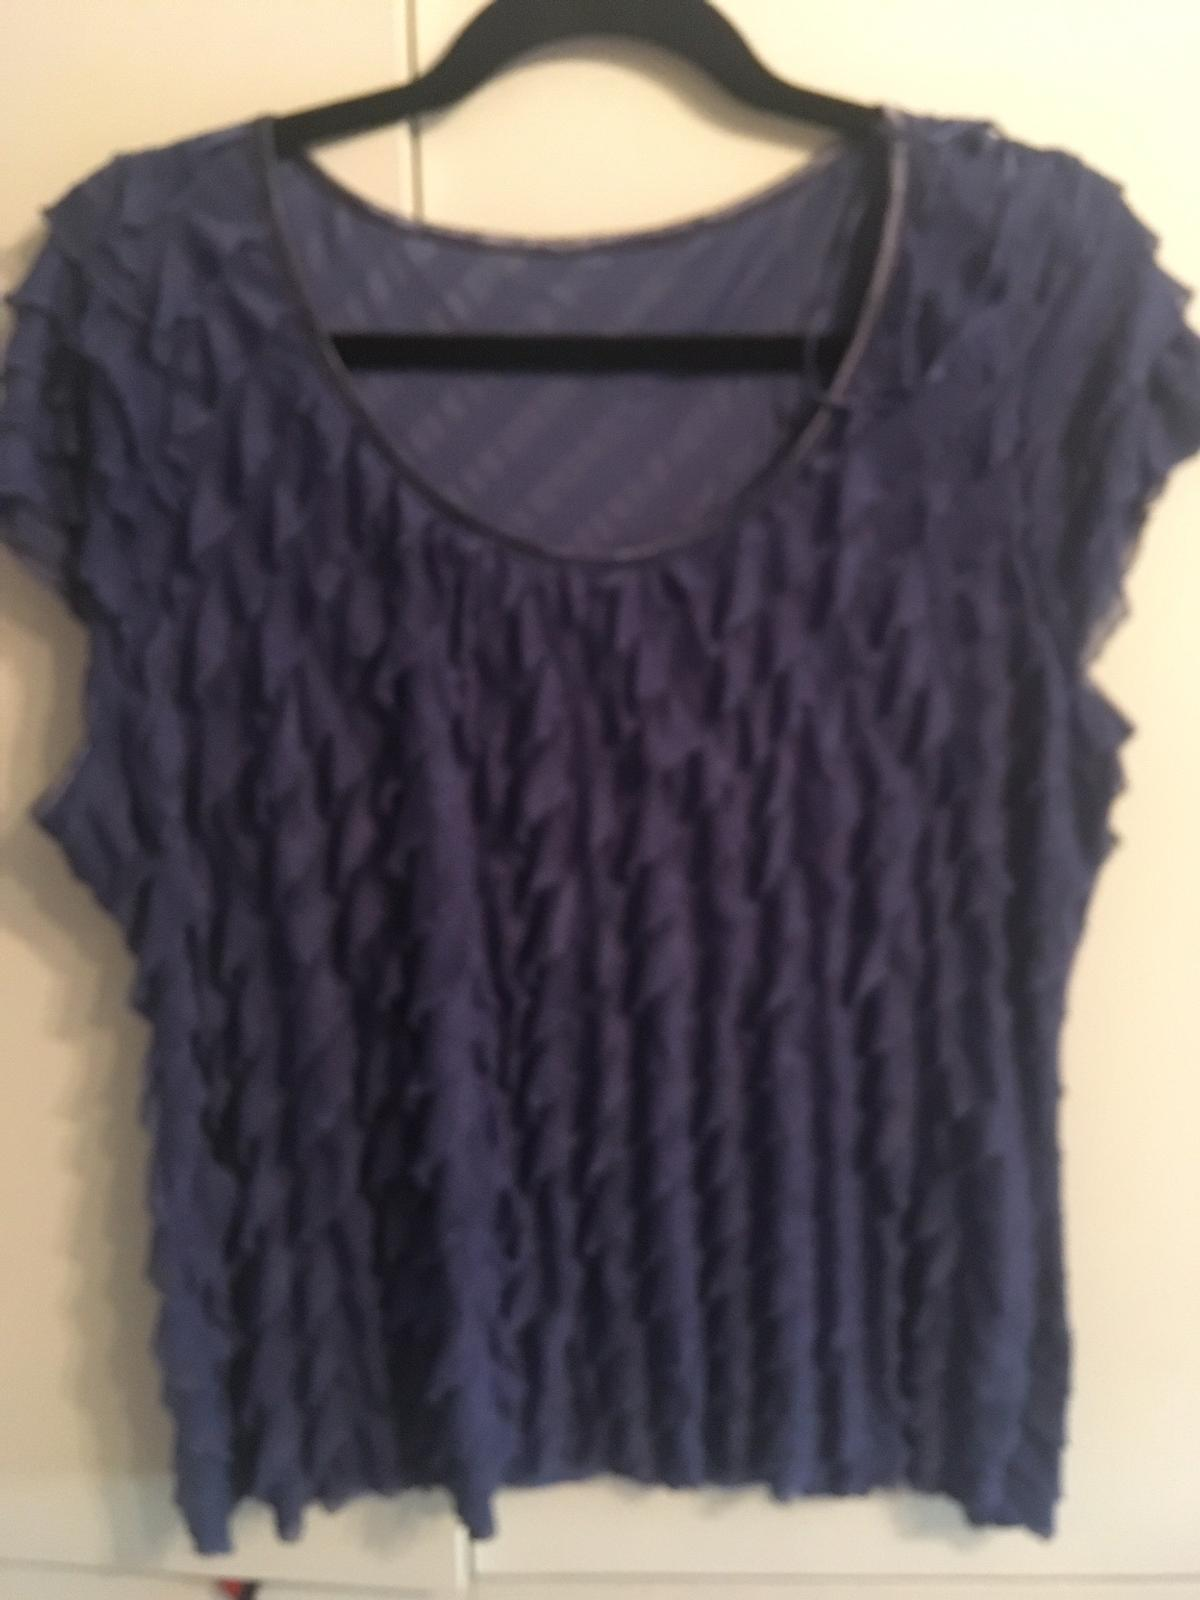 Lovely ladies top Blue No label but I'd say 14/16 as very stretchy Immaculate condition Collection only